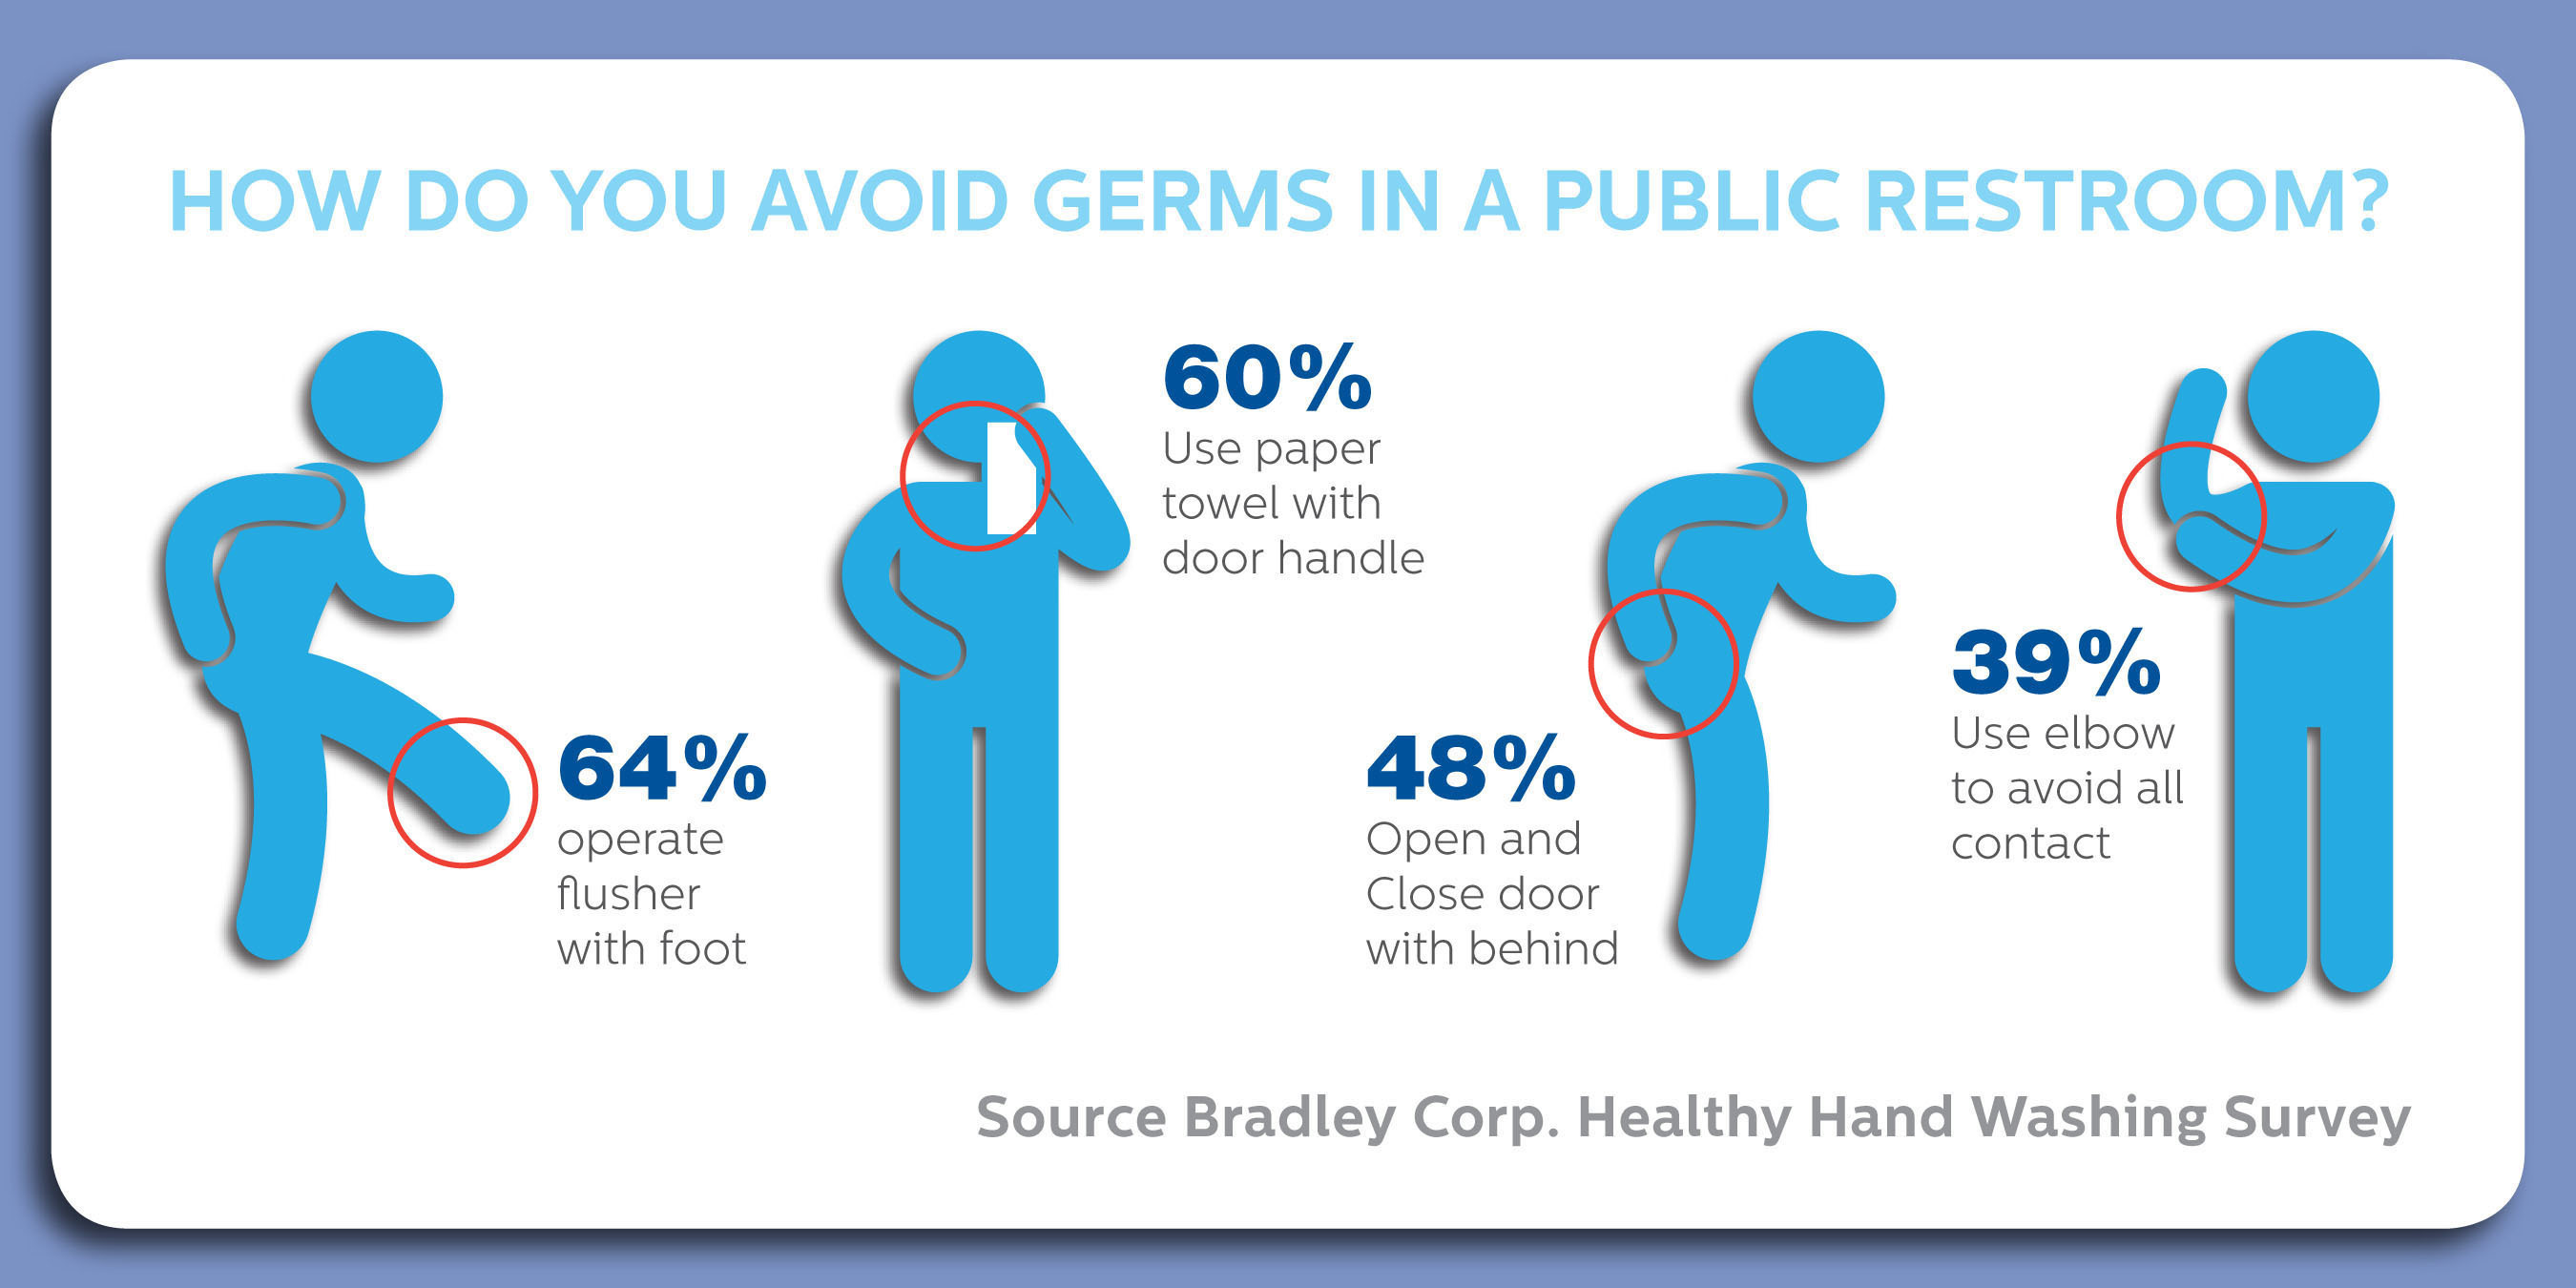 According to the Healthy Hand Washing Survey from Bradley Corp., Americans go to great lengths to avoid coming into contact with germs in a public restroom. They commonly operate the toilet flusher with their foot (64 percent); use a paper towel when touching the restroom door (60 percent); open and close doors with their behind (48 percent); and use their elbow to avoid touching anything with their hands (39 percent).  (PRNewsFoto/Bradley Corporation)